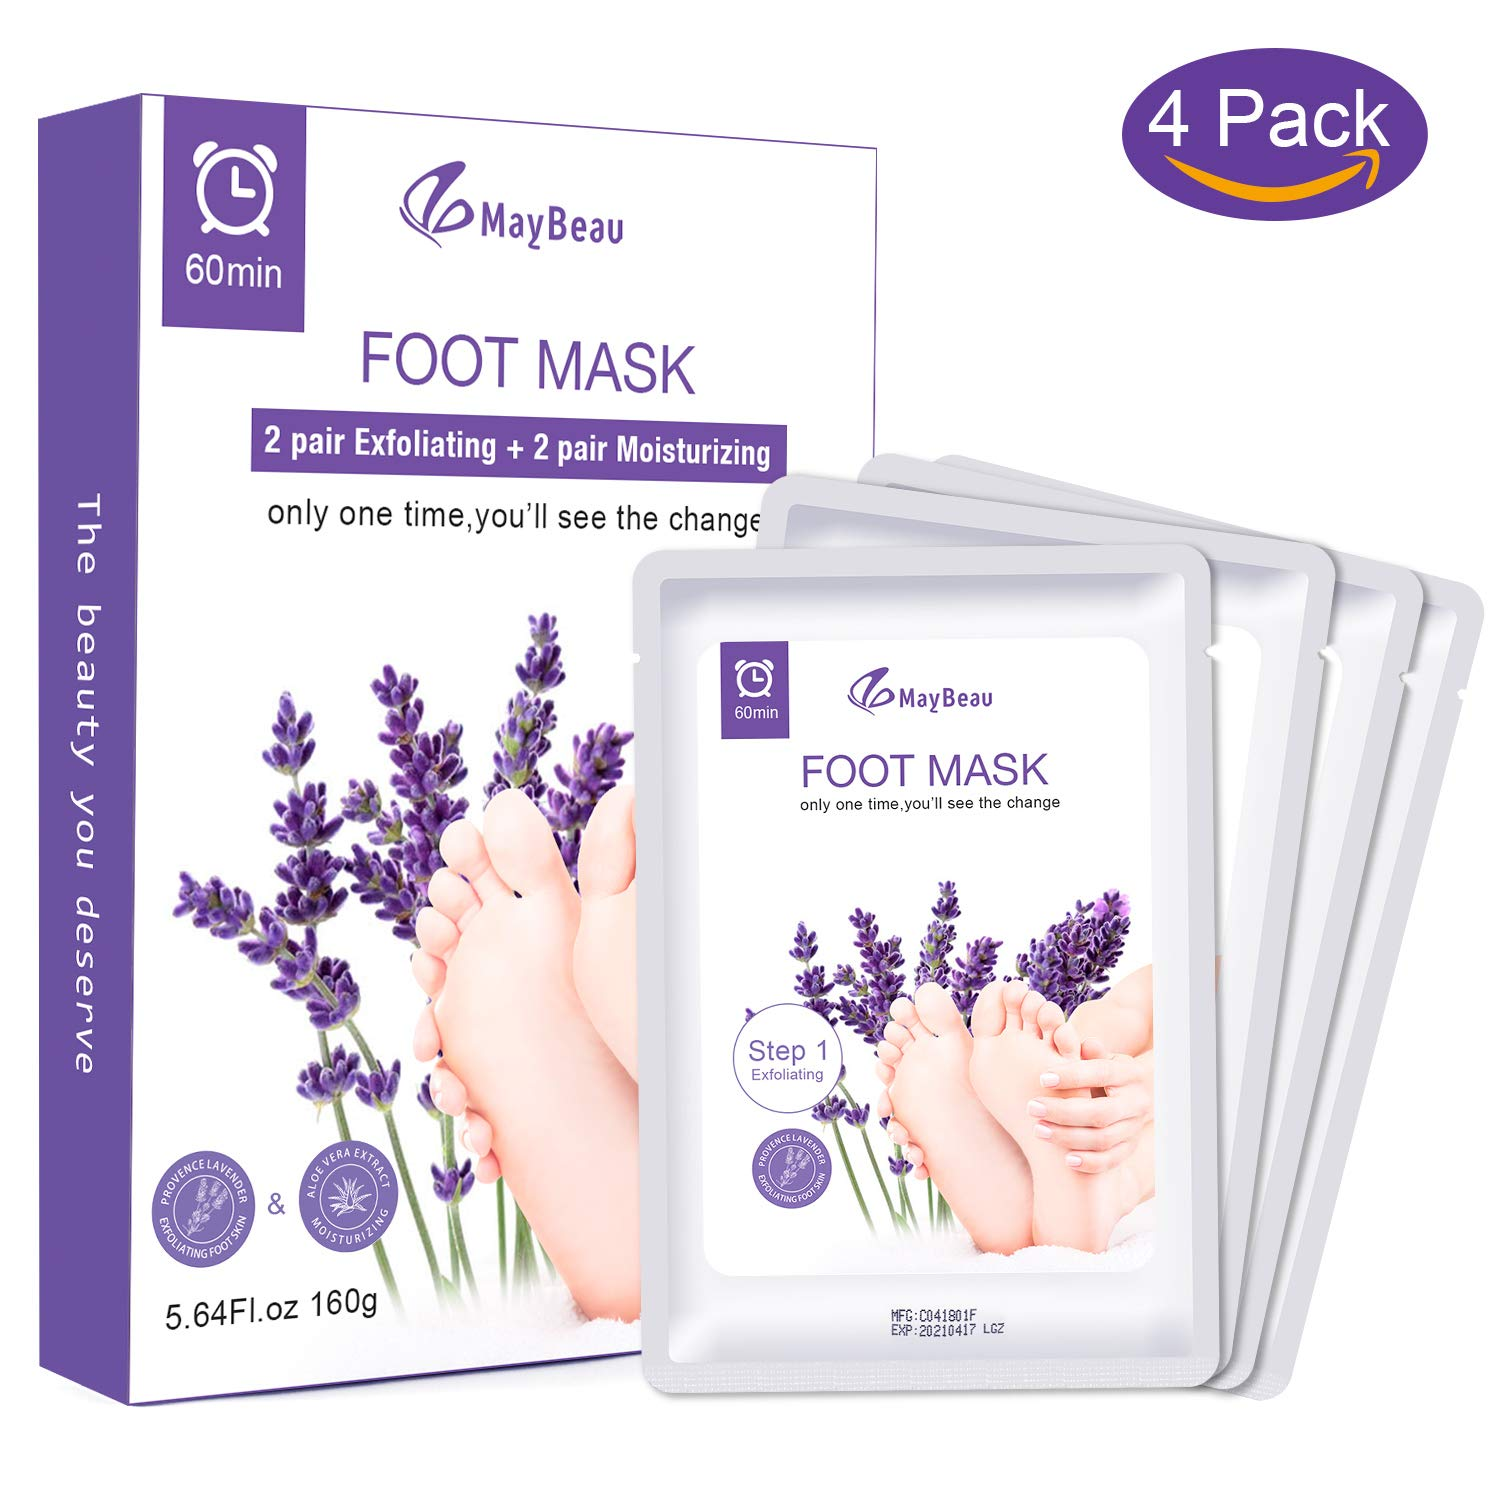 Foot Peel Mask MayBeau 2 Pairs of Foot Masks Callus and Dead Skin Remover Exfoliating and Moisturizing Set